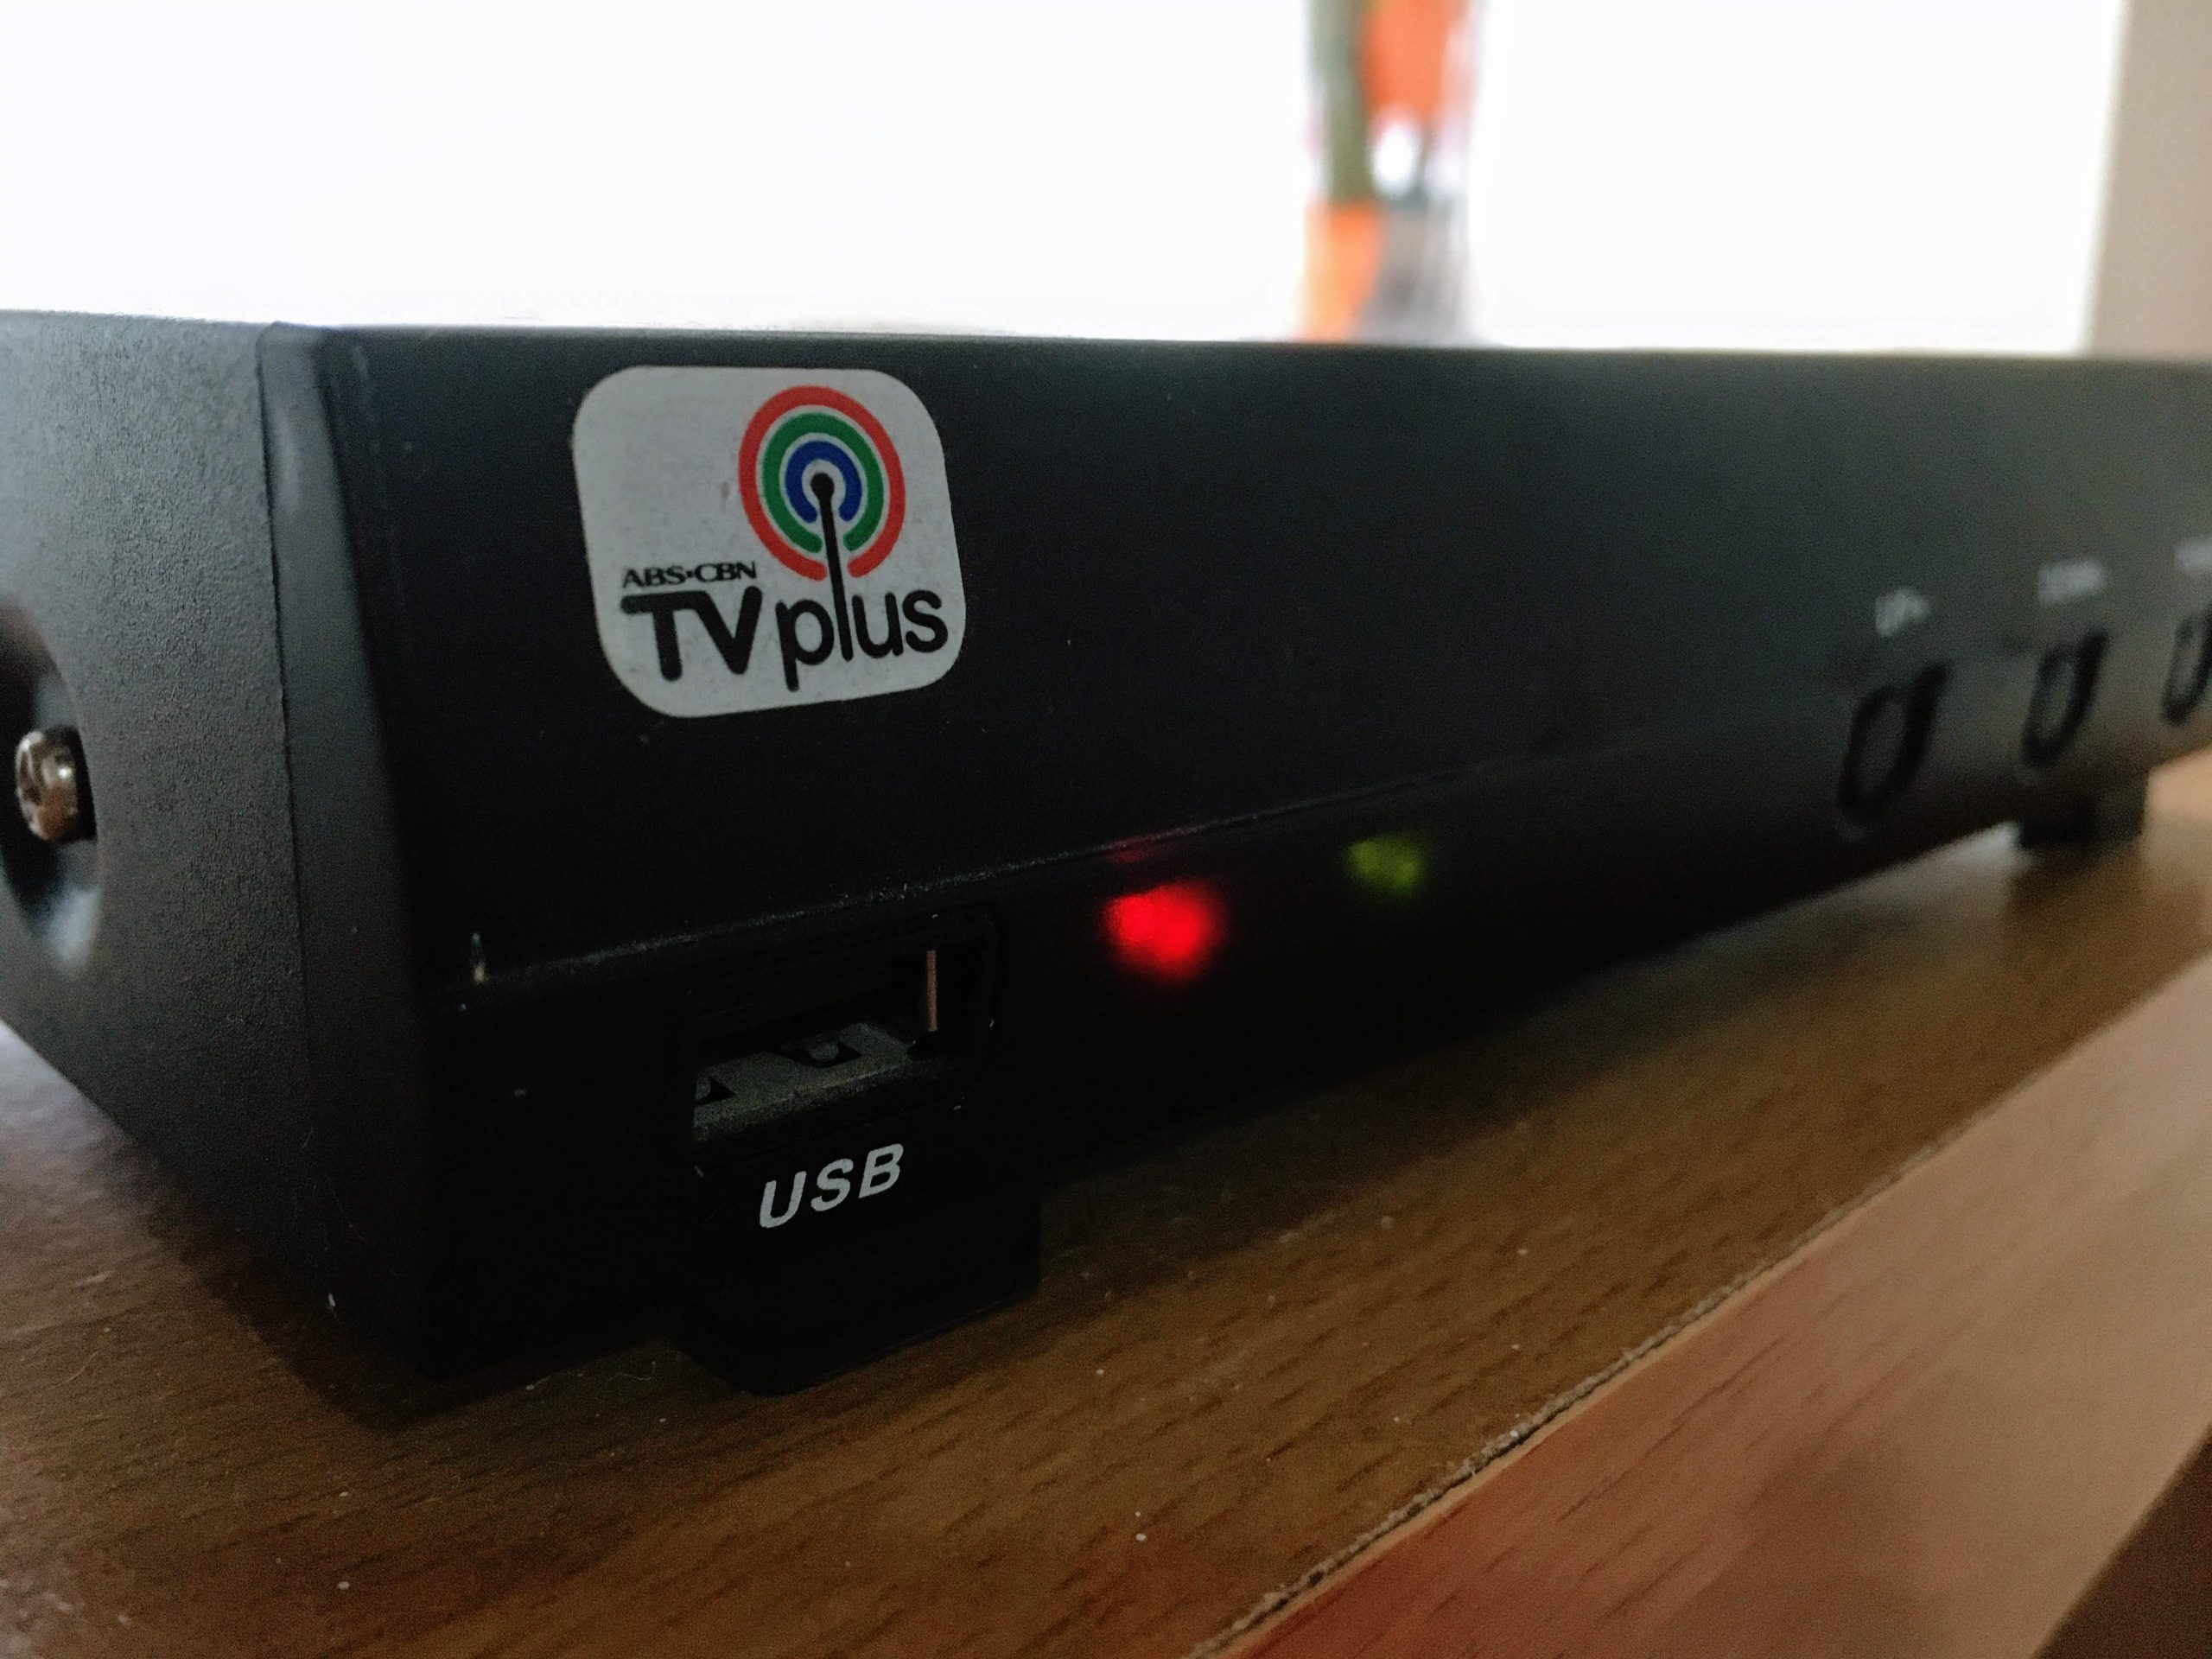 abs-cbn-tvplus-what-channels-are-working